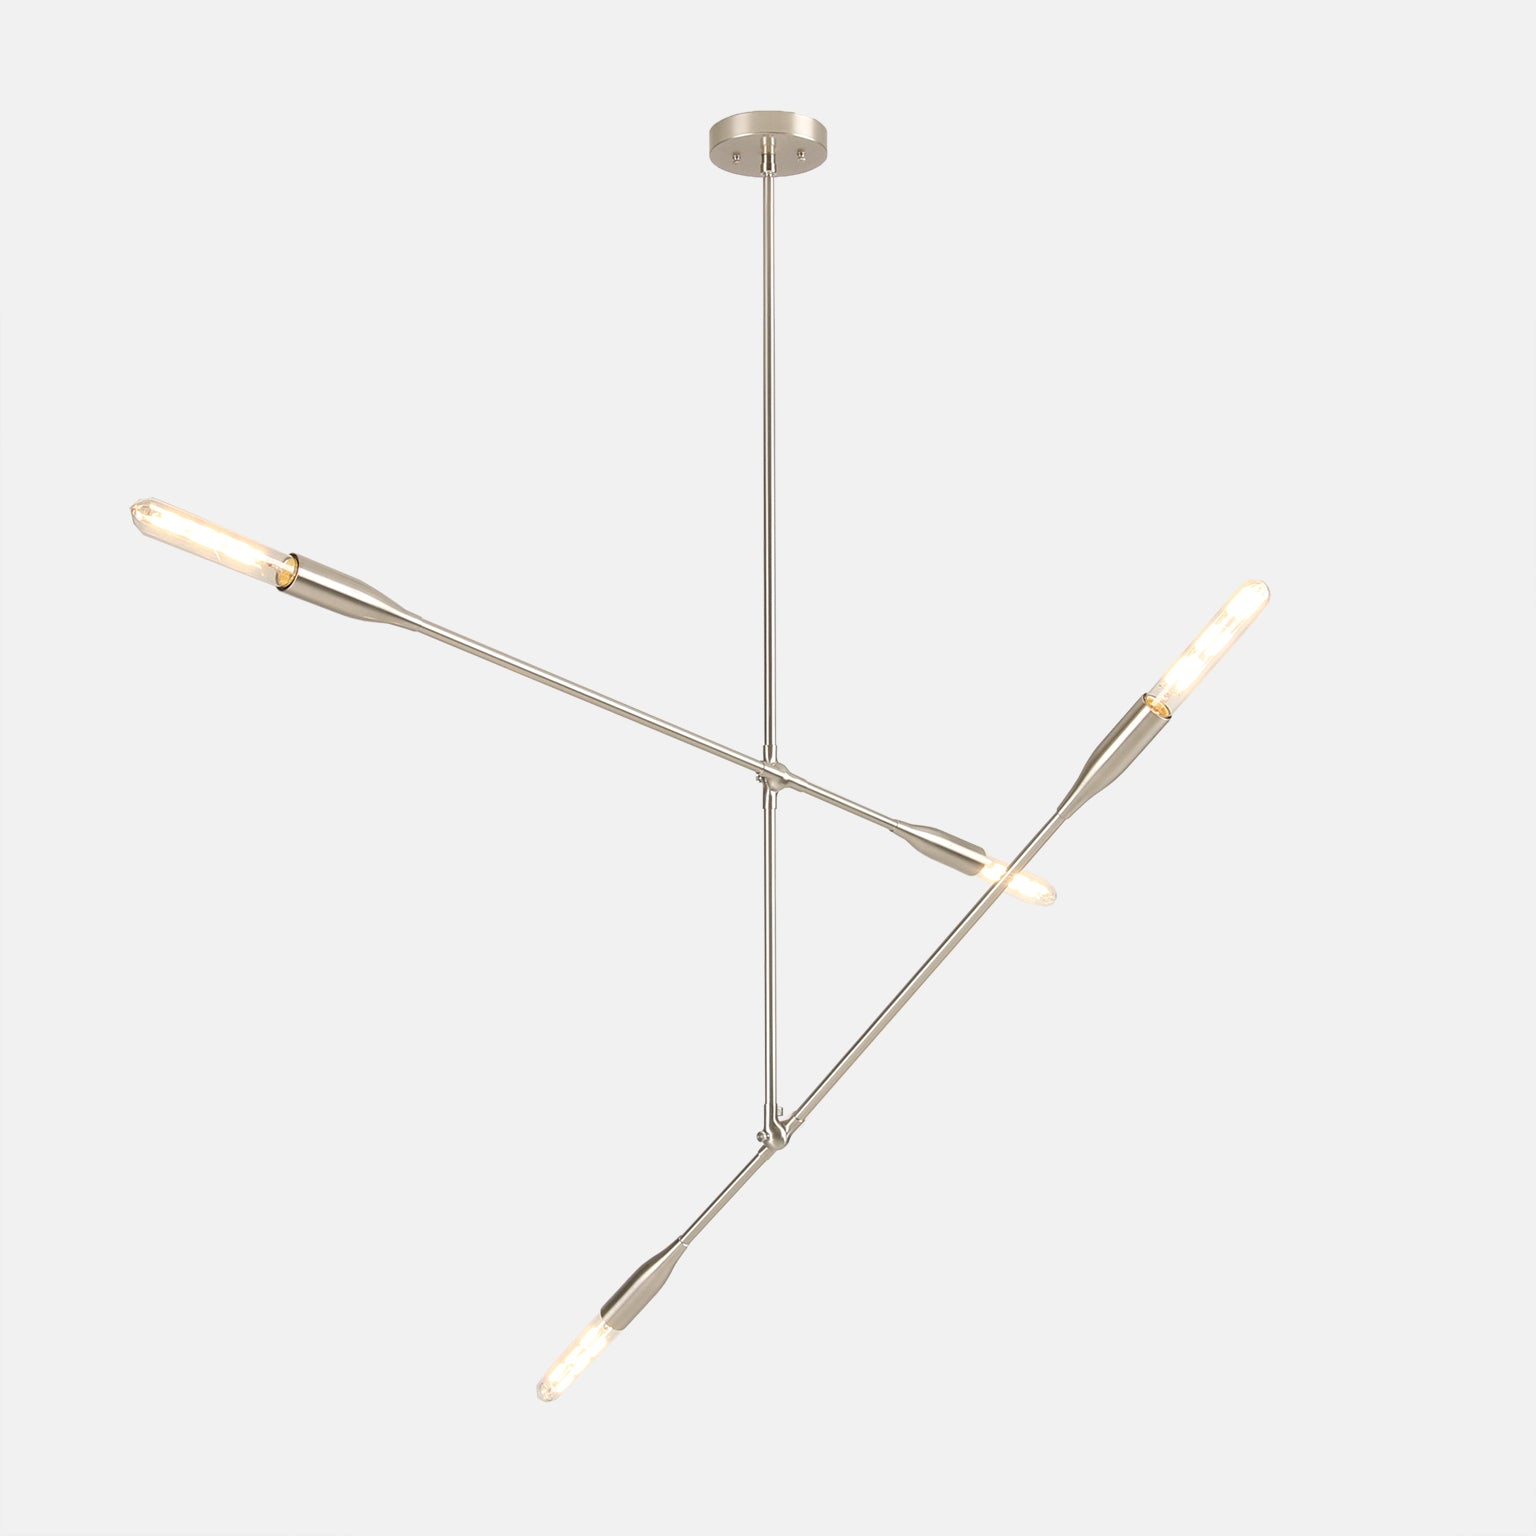 Sorenthia 2-Arm Light by Studio DUNN in Brushed Nickel on a grey background